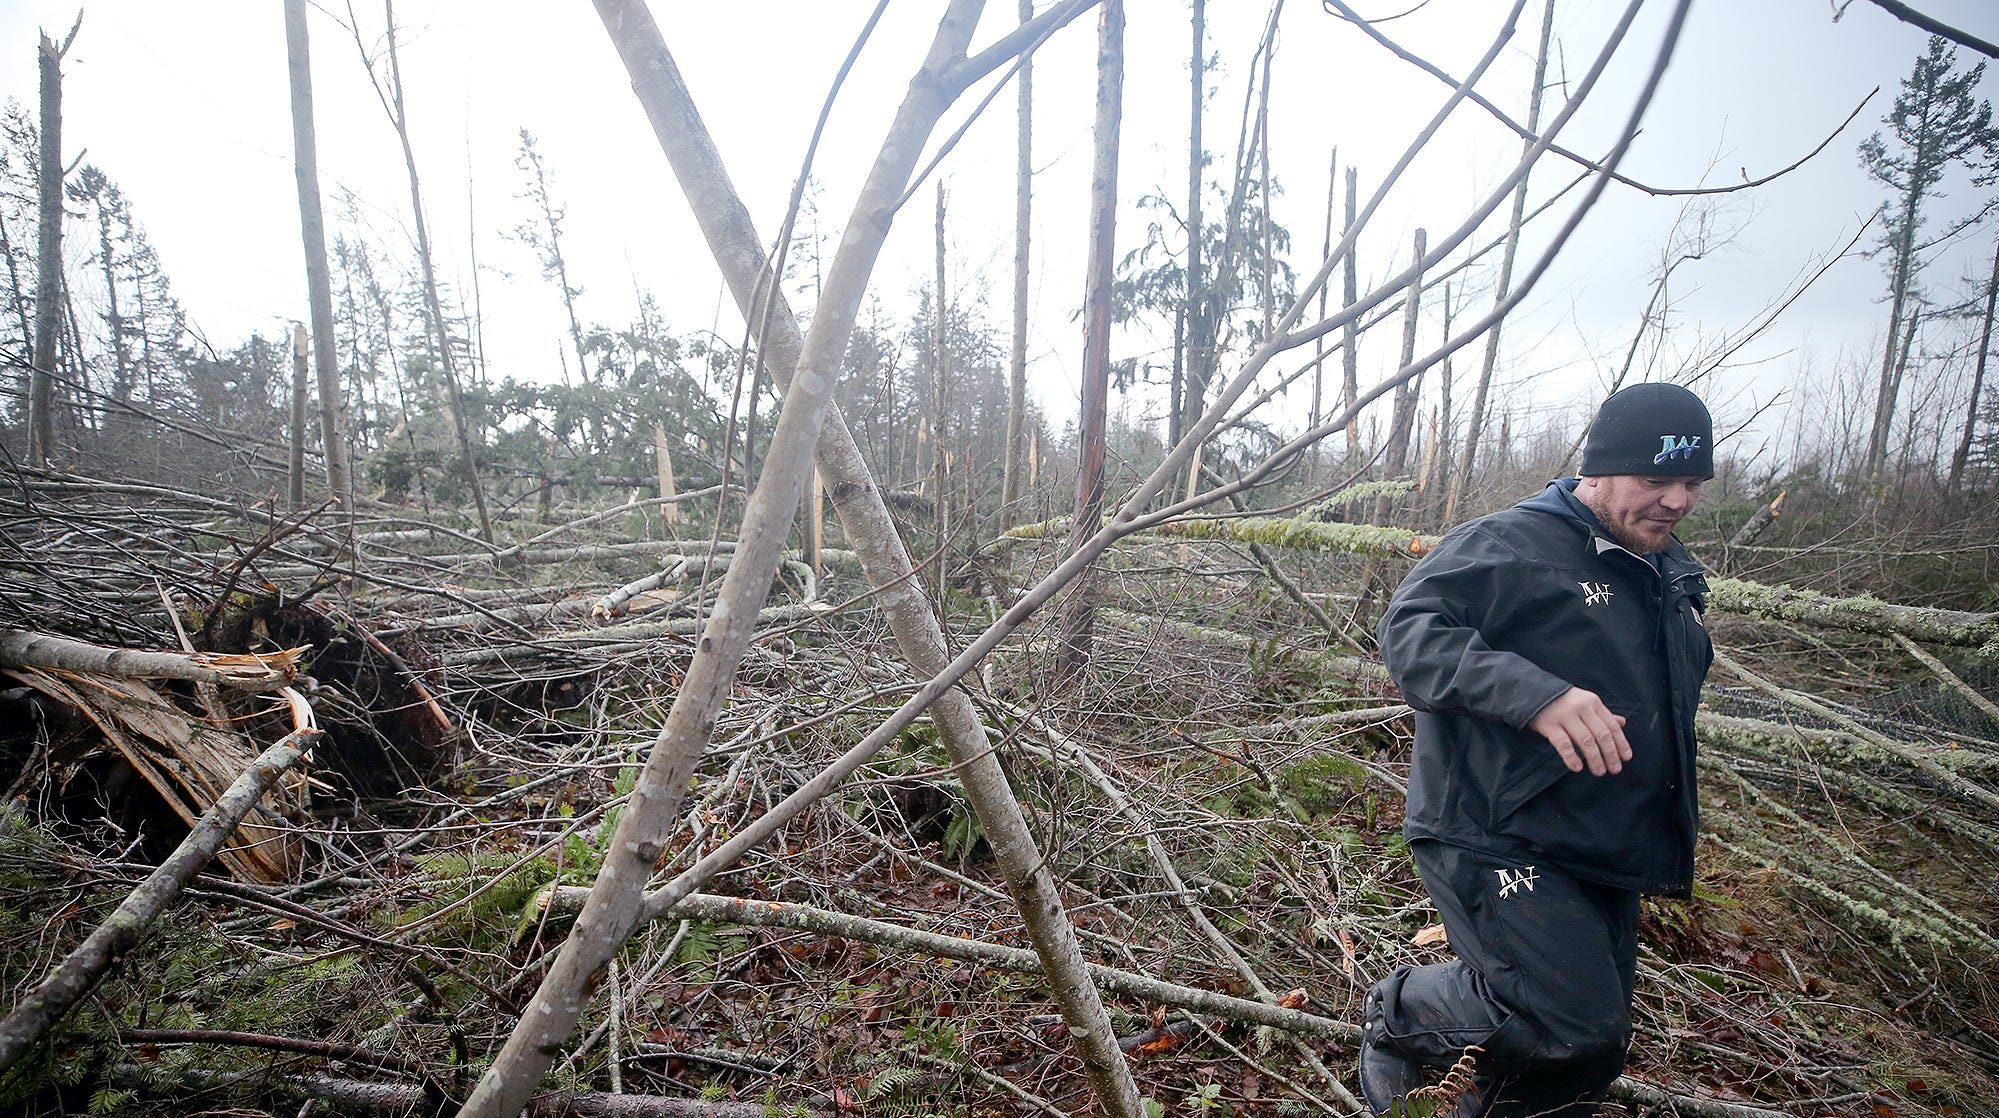 John Wagner walks through the downed trees behind Walmart after A tornado came through Port Orchard on the afternoon of Tuesday, December 18, 2018. The path was over Bethel near Walmart, and Safeway. He filmed the tornado from the Safeway.